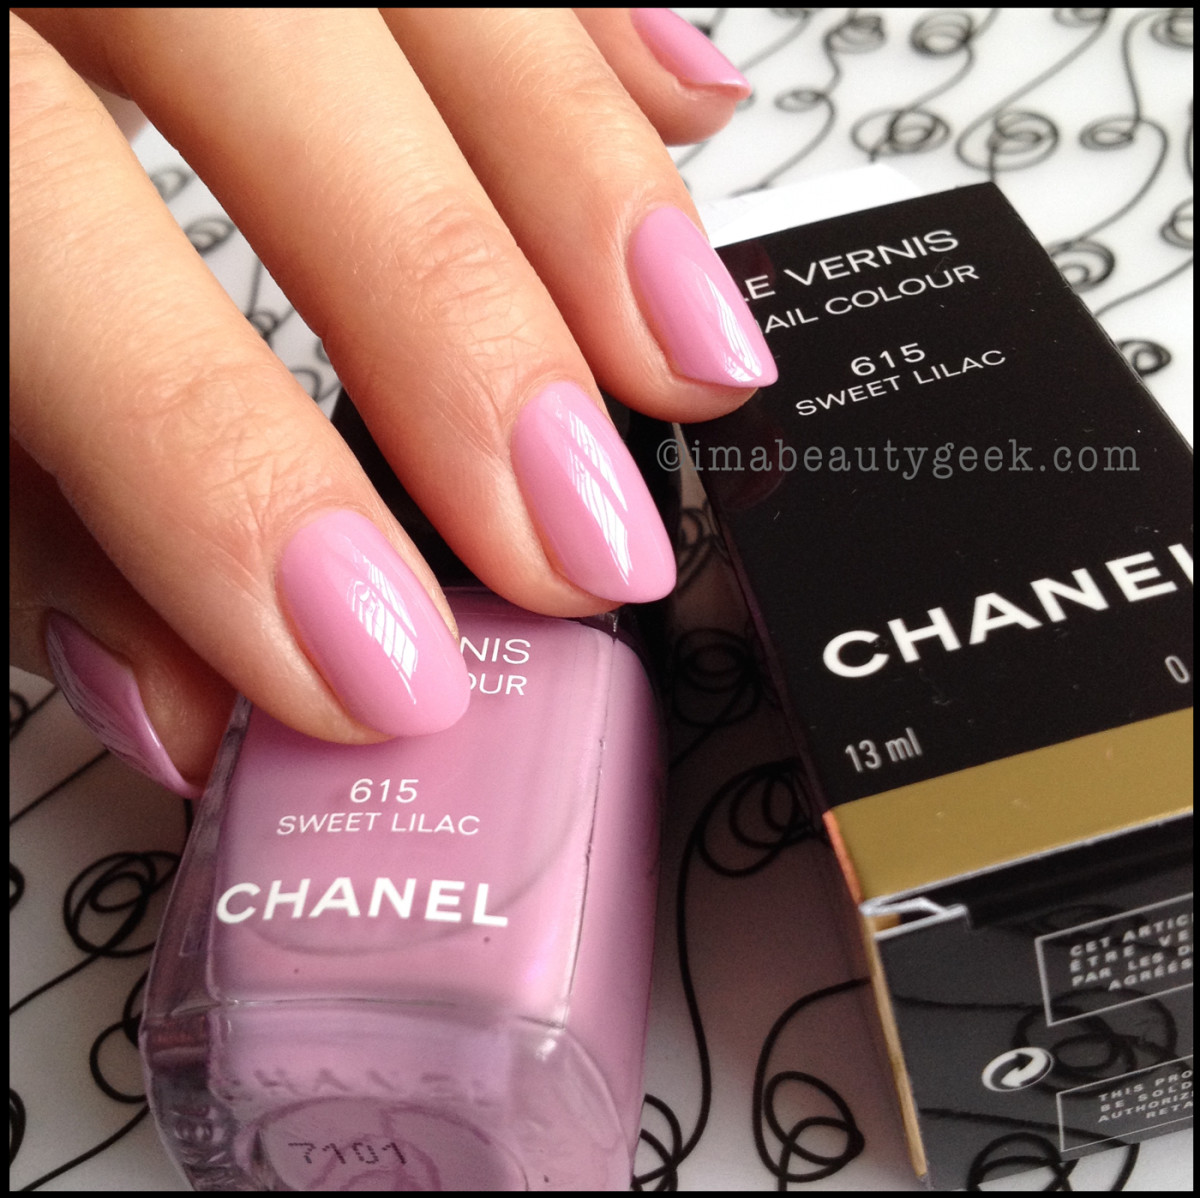 Chanel Summer 2014_Chanel Sweet Lilac 615 Le Vernis